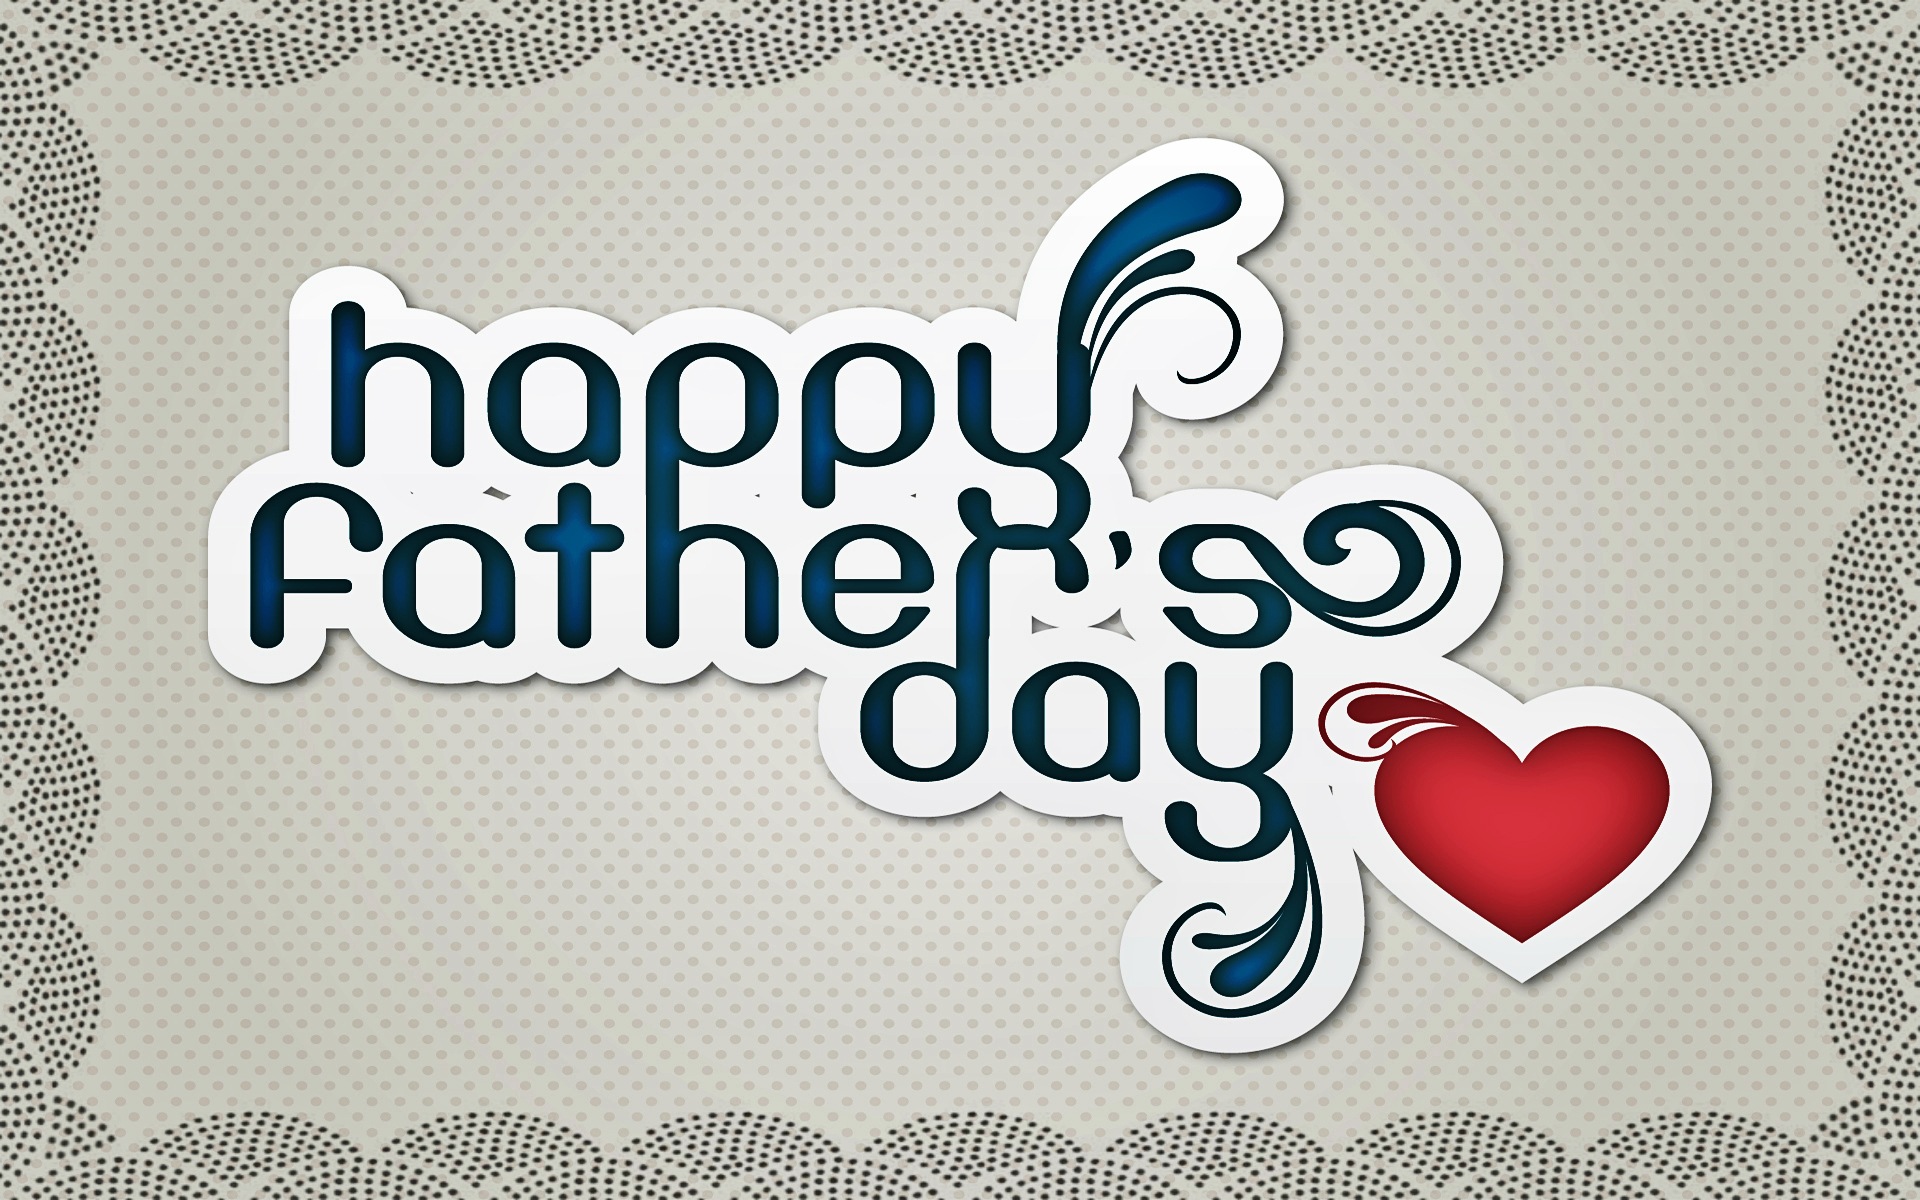 happy fathers day 2016 quotes images pictures status shayri wallpapers status messages